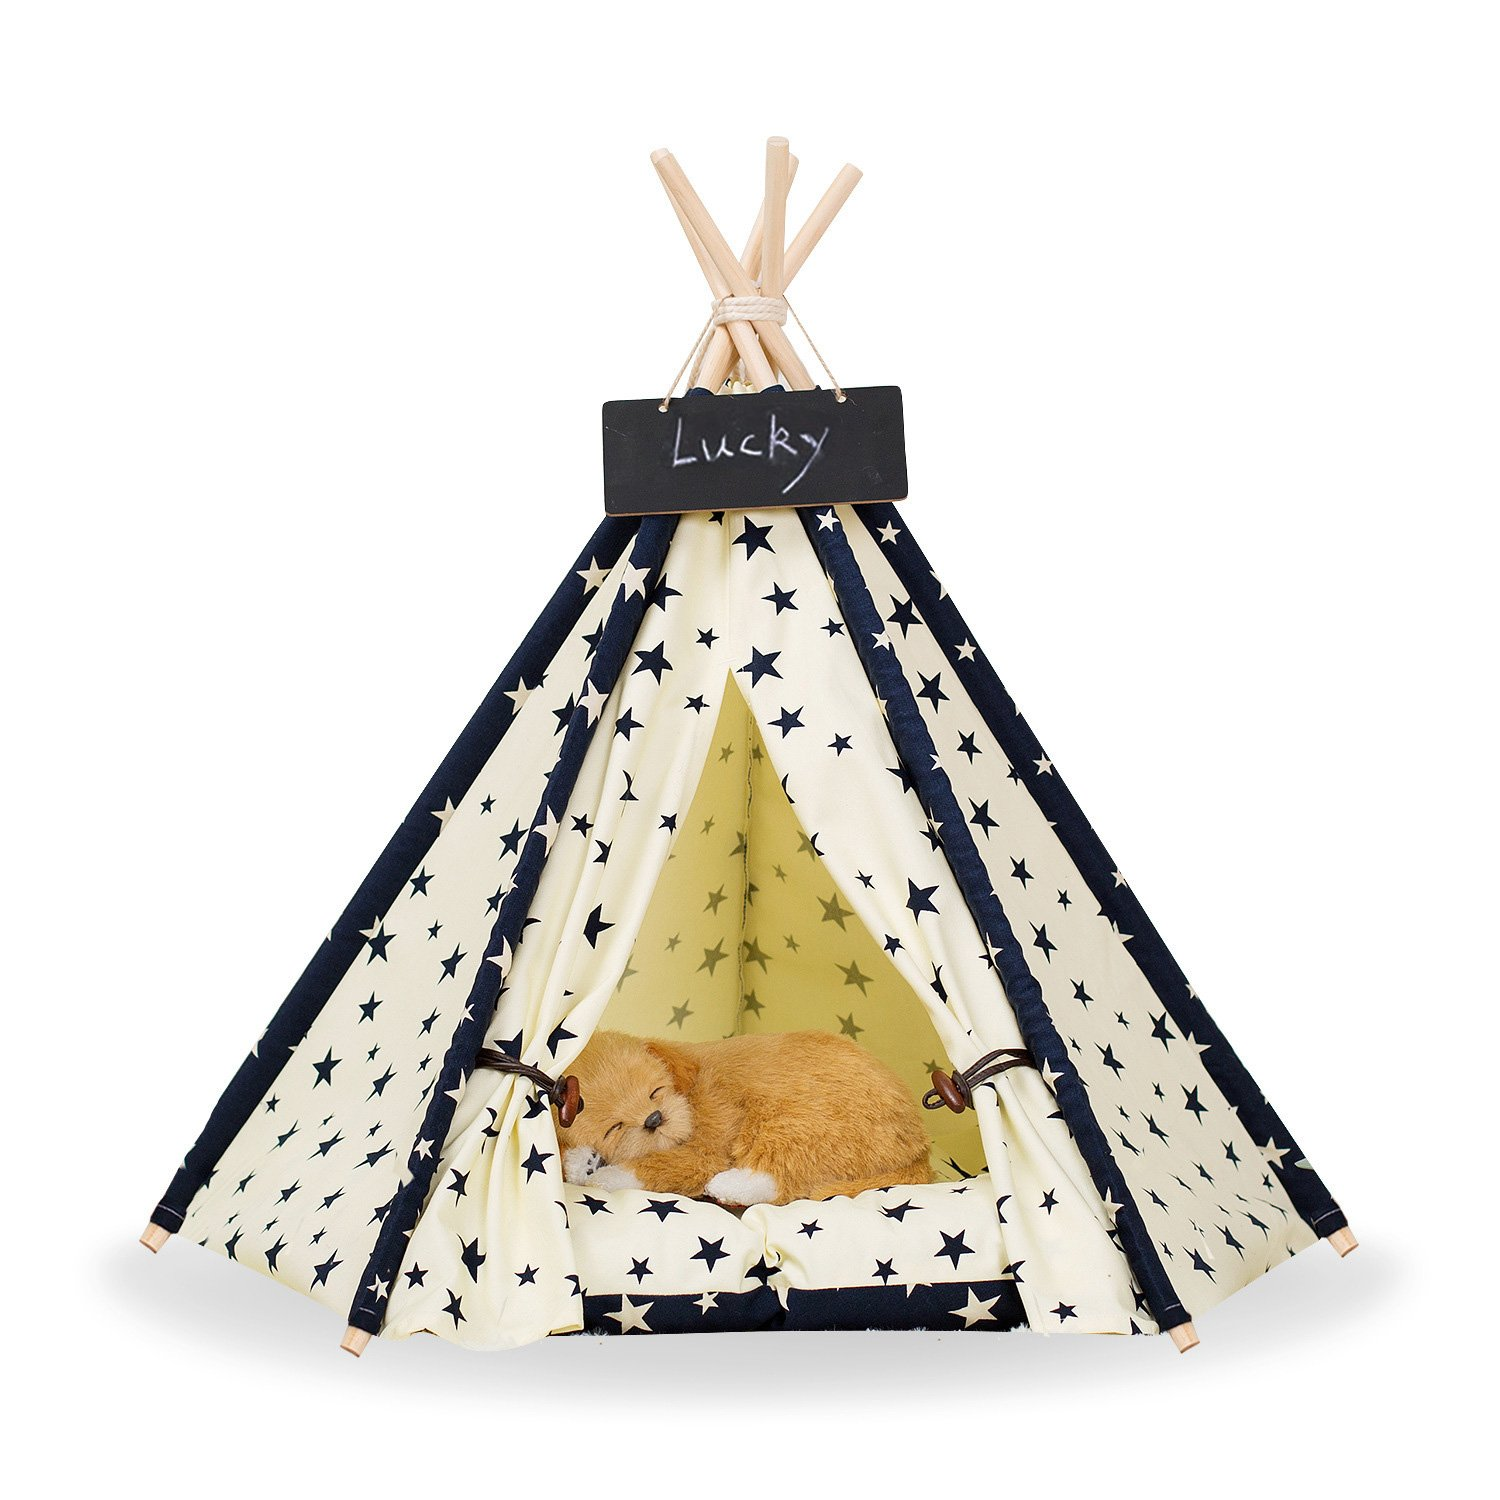 Zaihe Pet Teepee Dog & Cat Bed - Portable Dog Tents & Pet Houses with Cushion & Blackboard, 24 Inch, Up to 15lbs, Stars Pattern by Zaihe